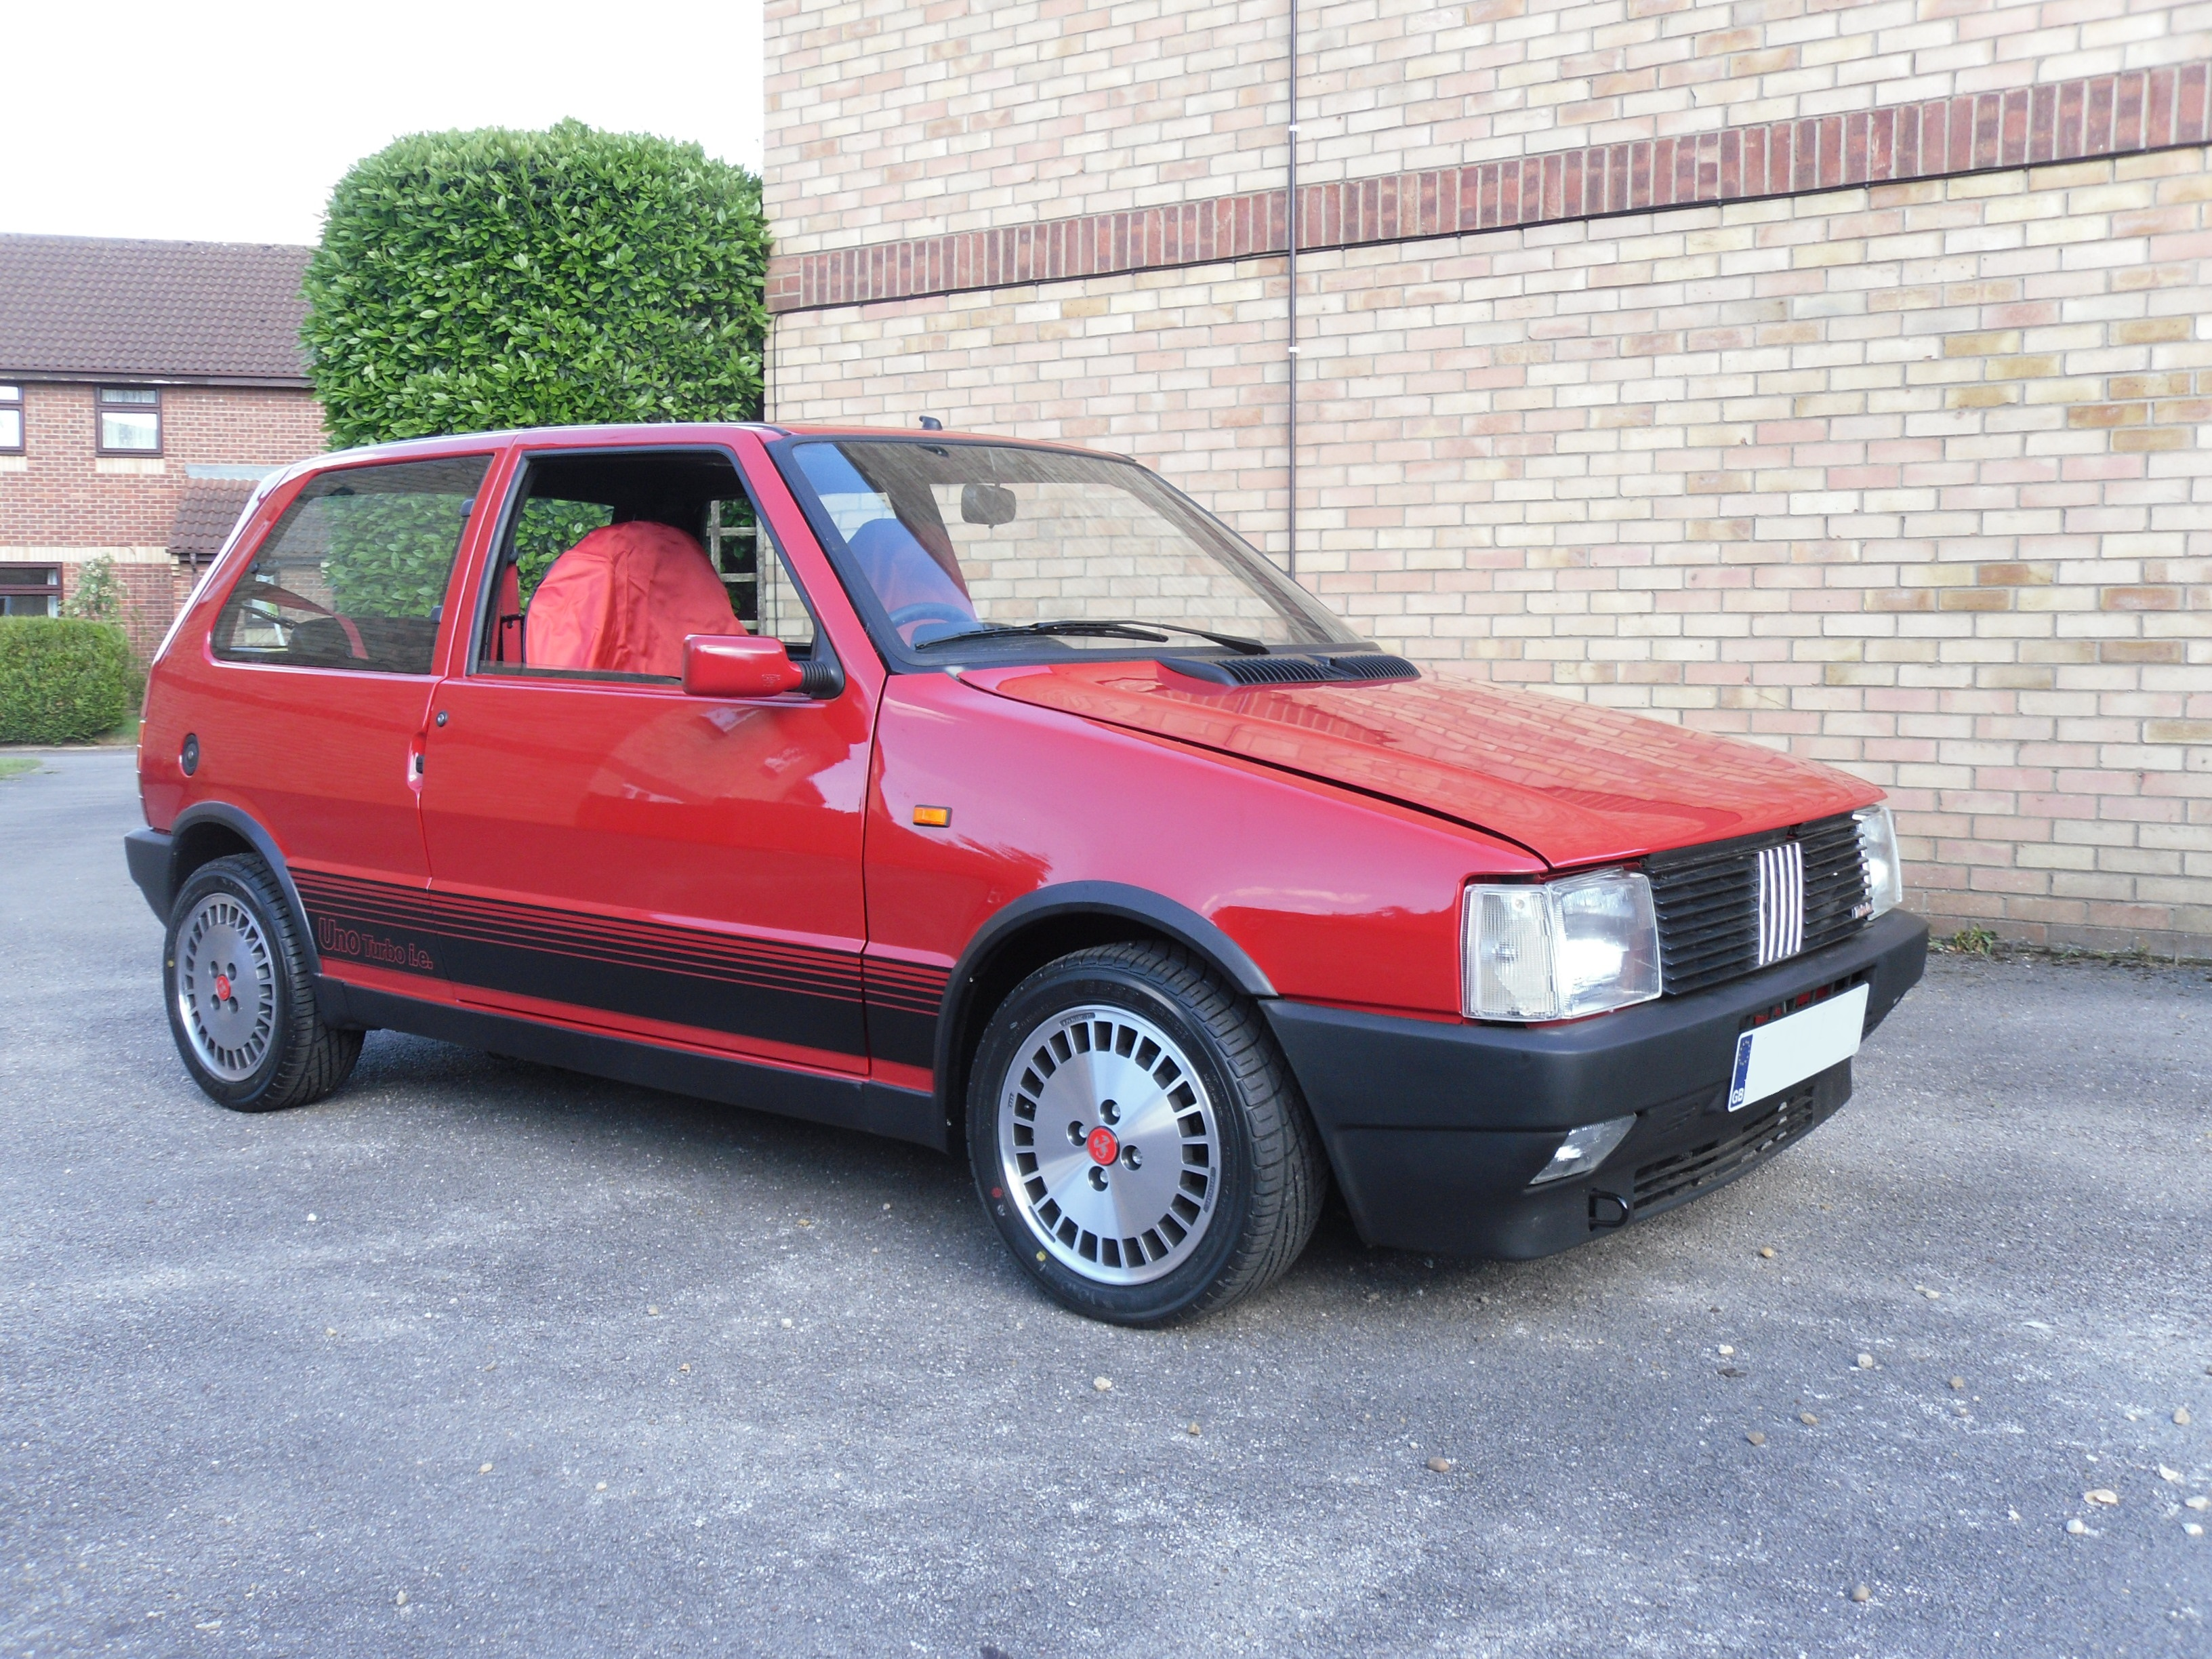 A 1988 Fiat Uno Turbo i.e. (UK-registered)